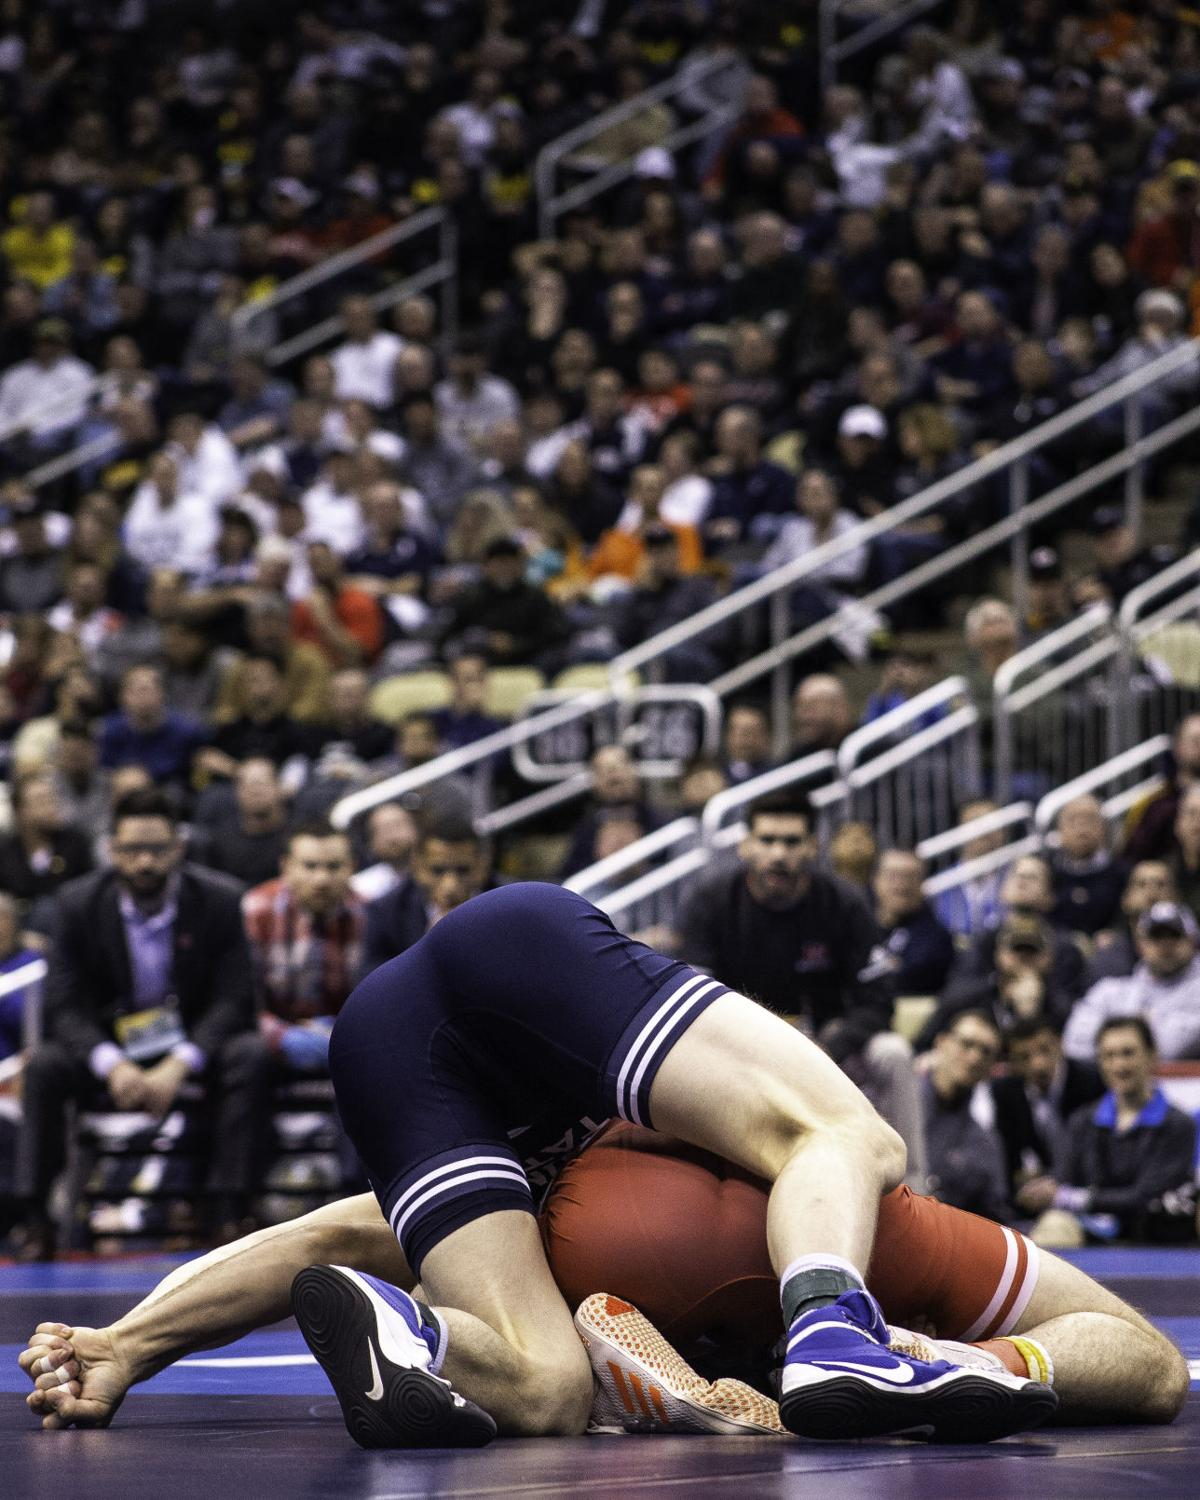 2019 Division 1 NCAA Wrestling Championships Finals: Photos